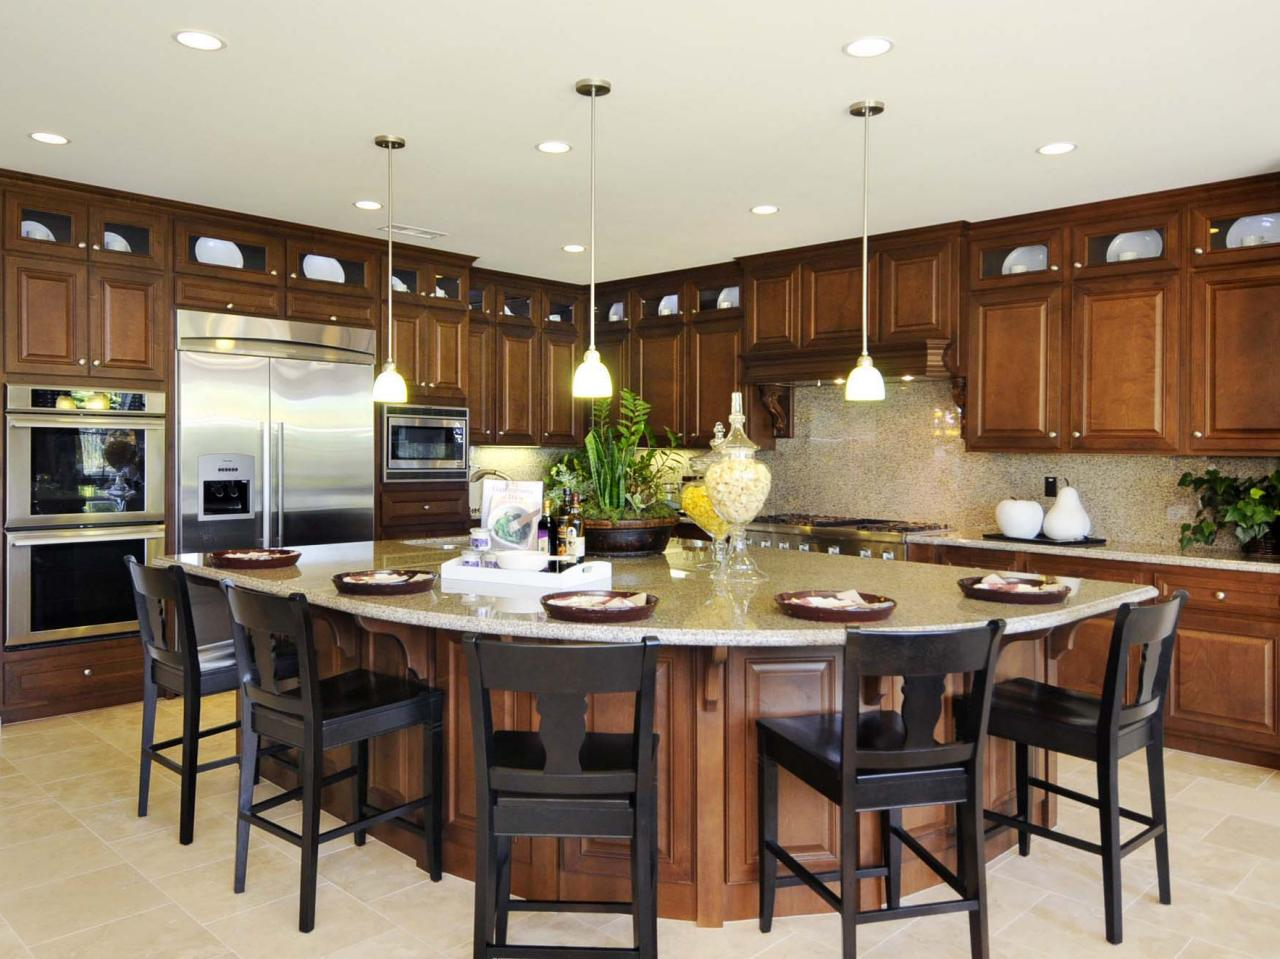 amazing Large Kitchen Designs With Islands #5: Kitchen Island With a Breakfast Bar